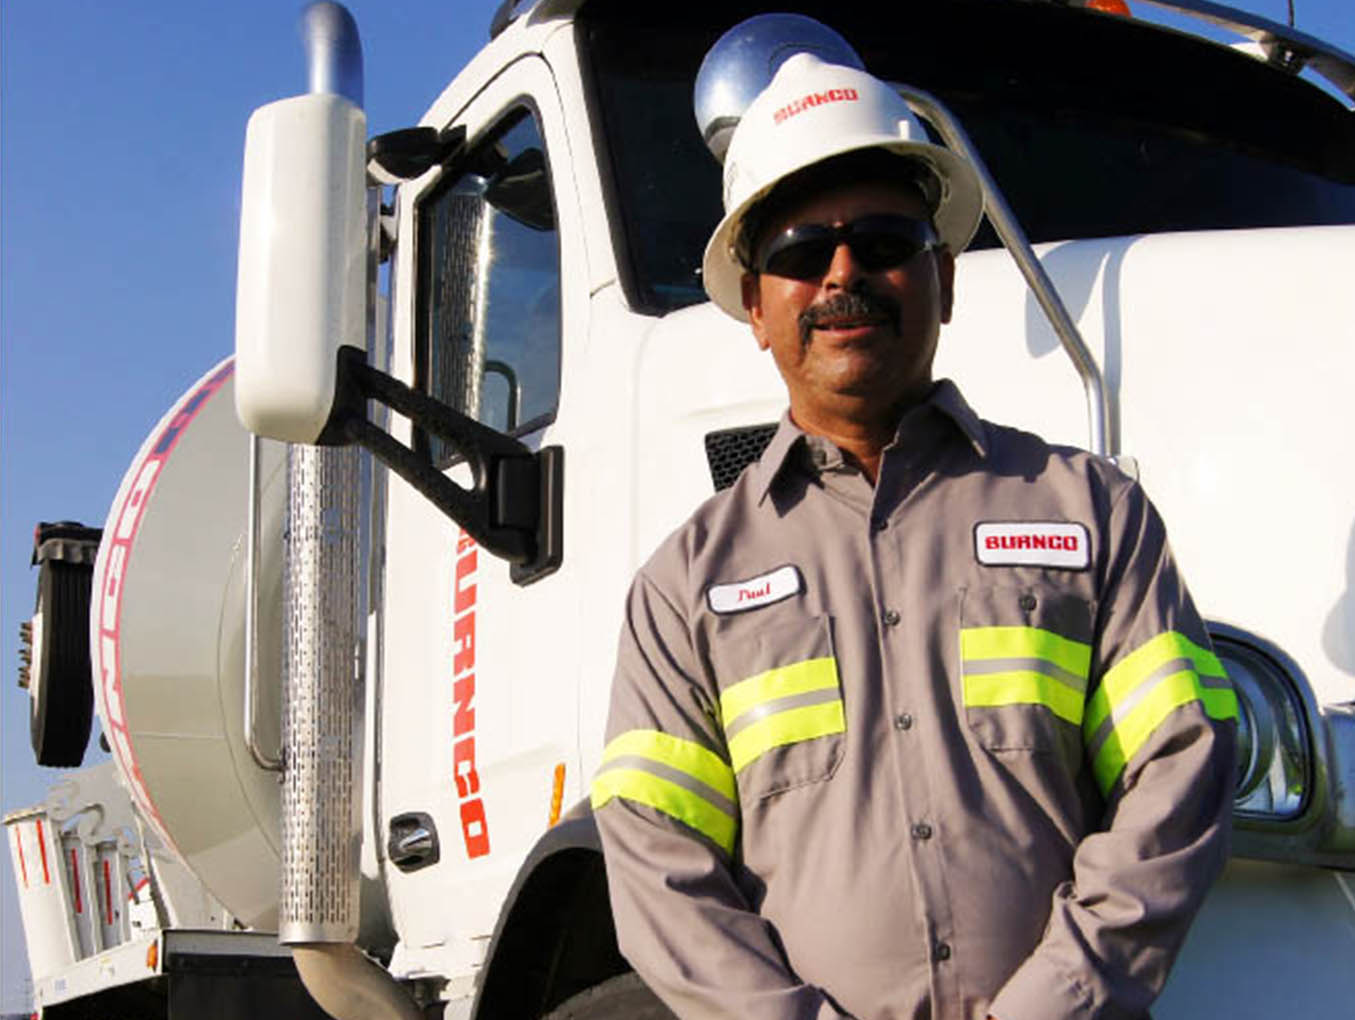 Paul Benavidez – TACA Truck Driver of the Year